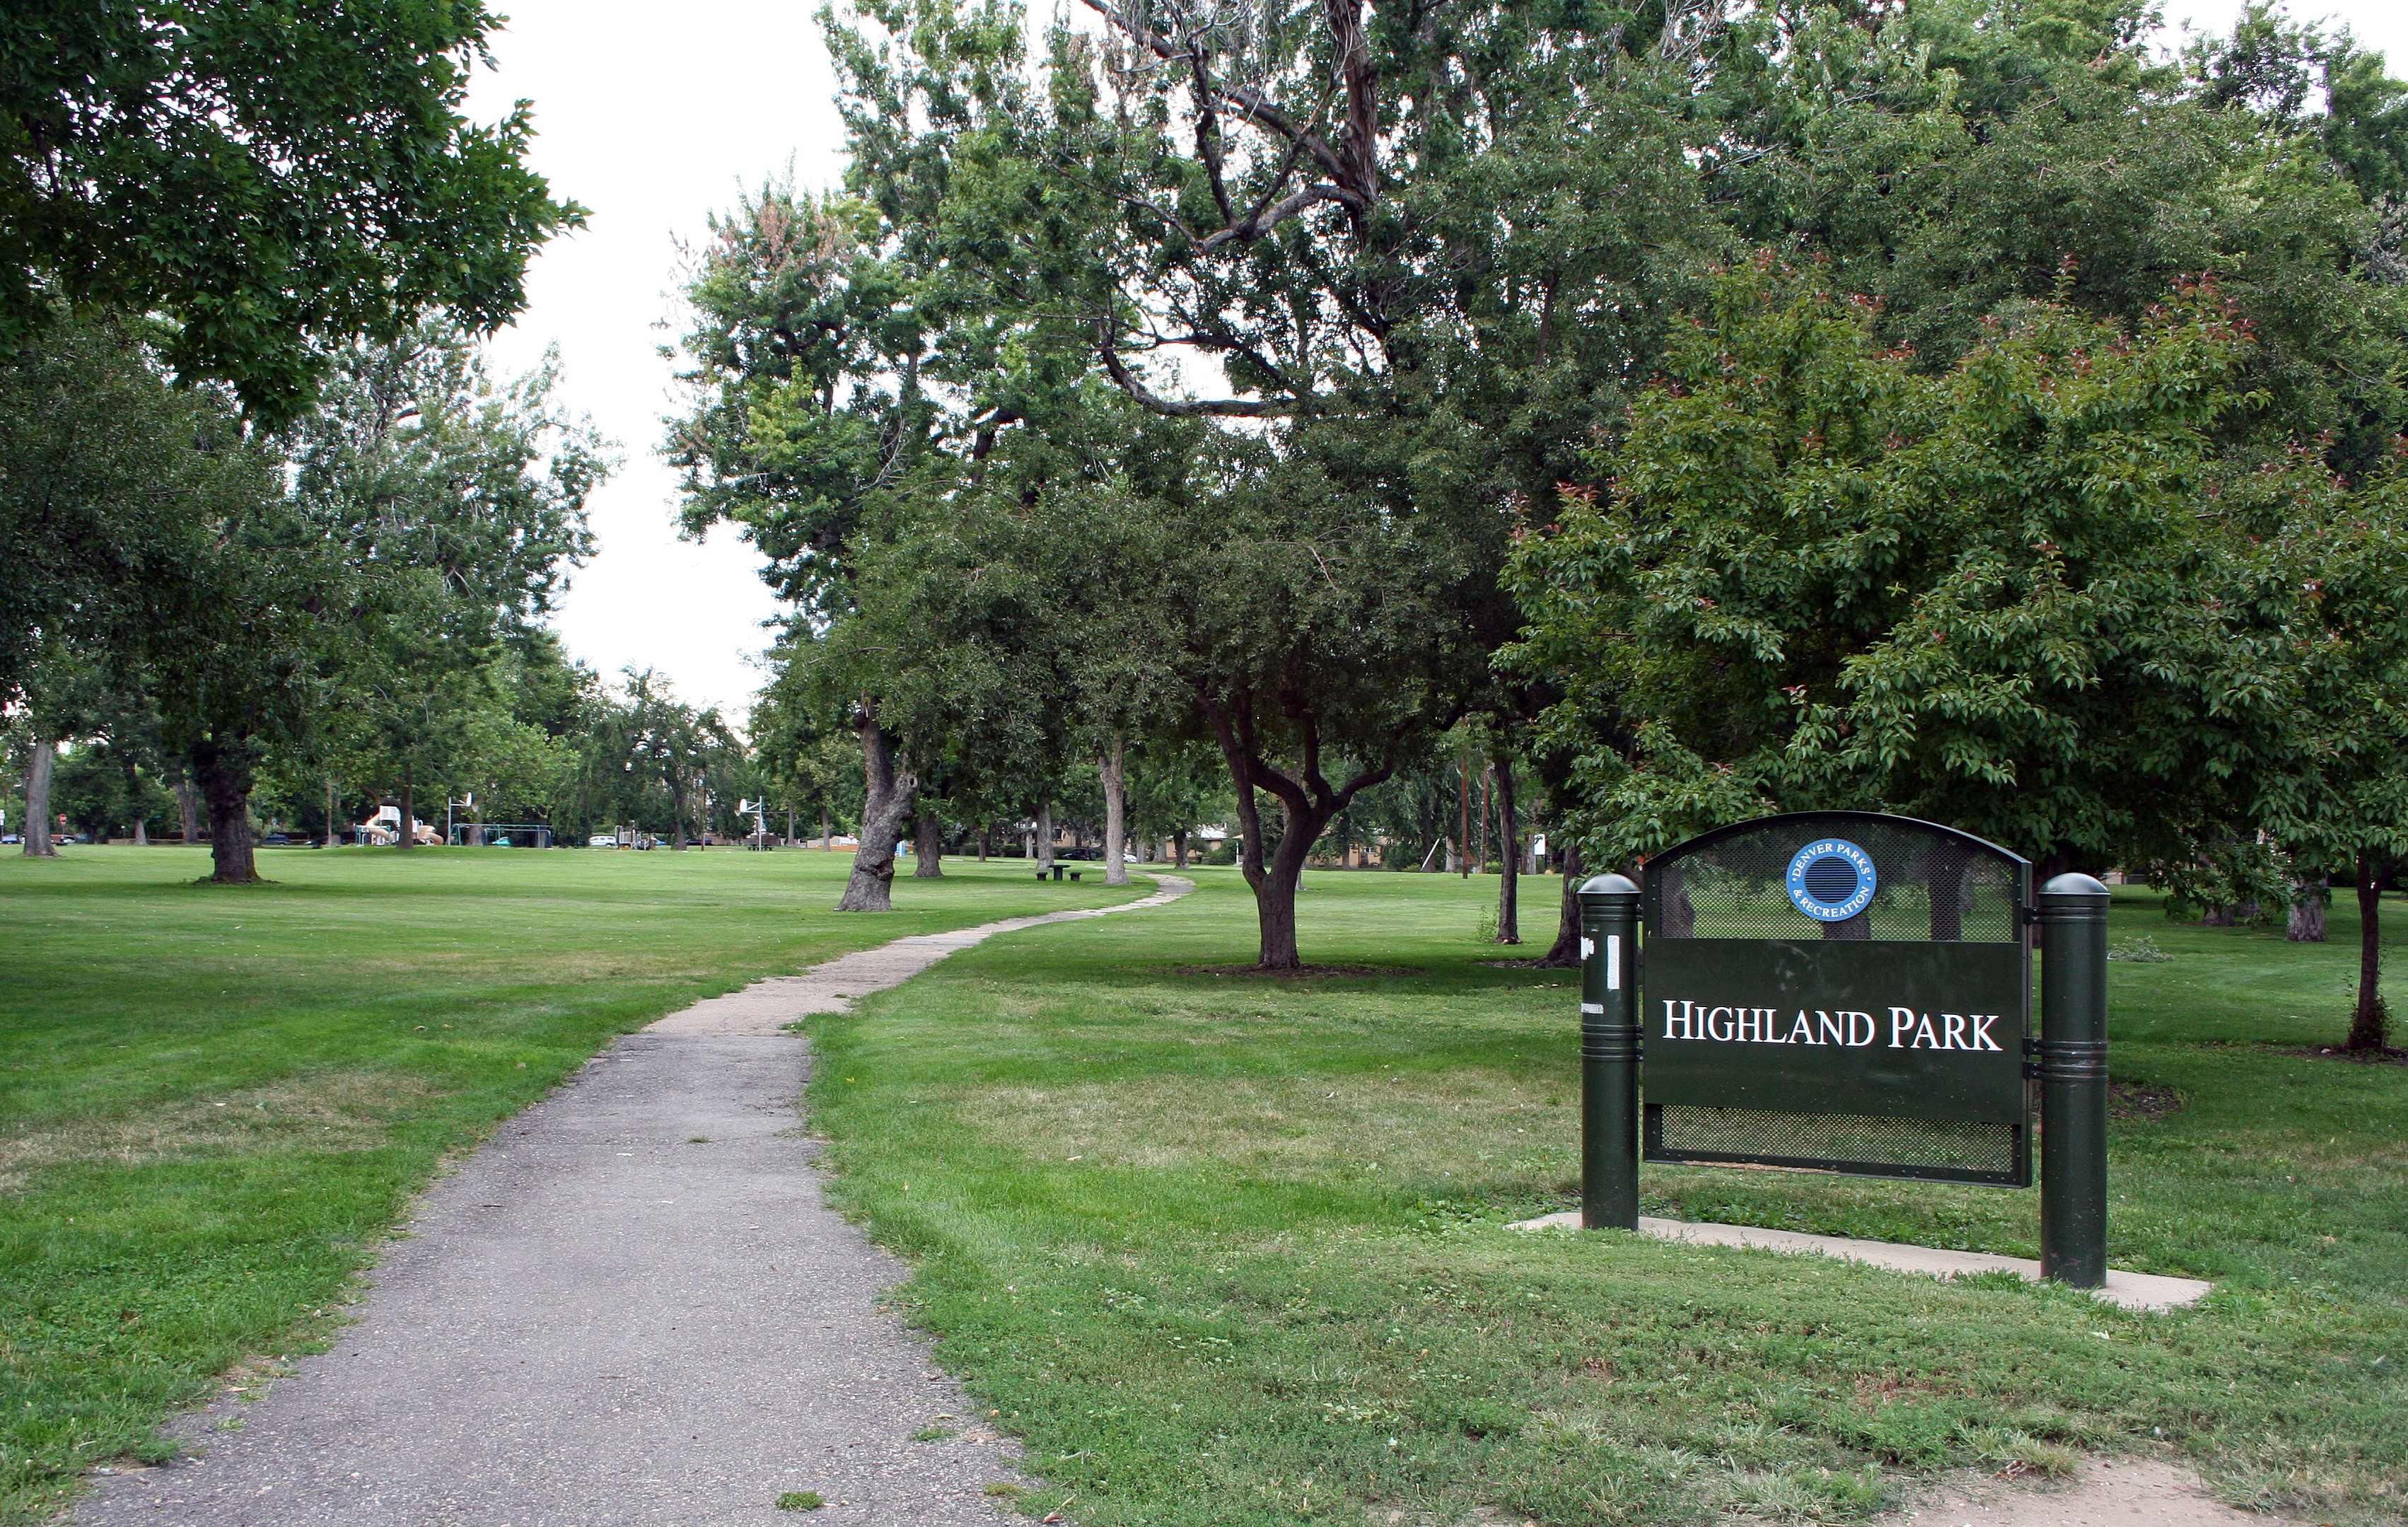 free online dating & chat in highland park Meet highland park singles online & chat in the forums dhu is a 100% free dating site to find personals & casual encounters in highland park.